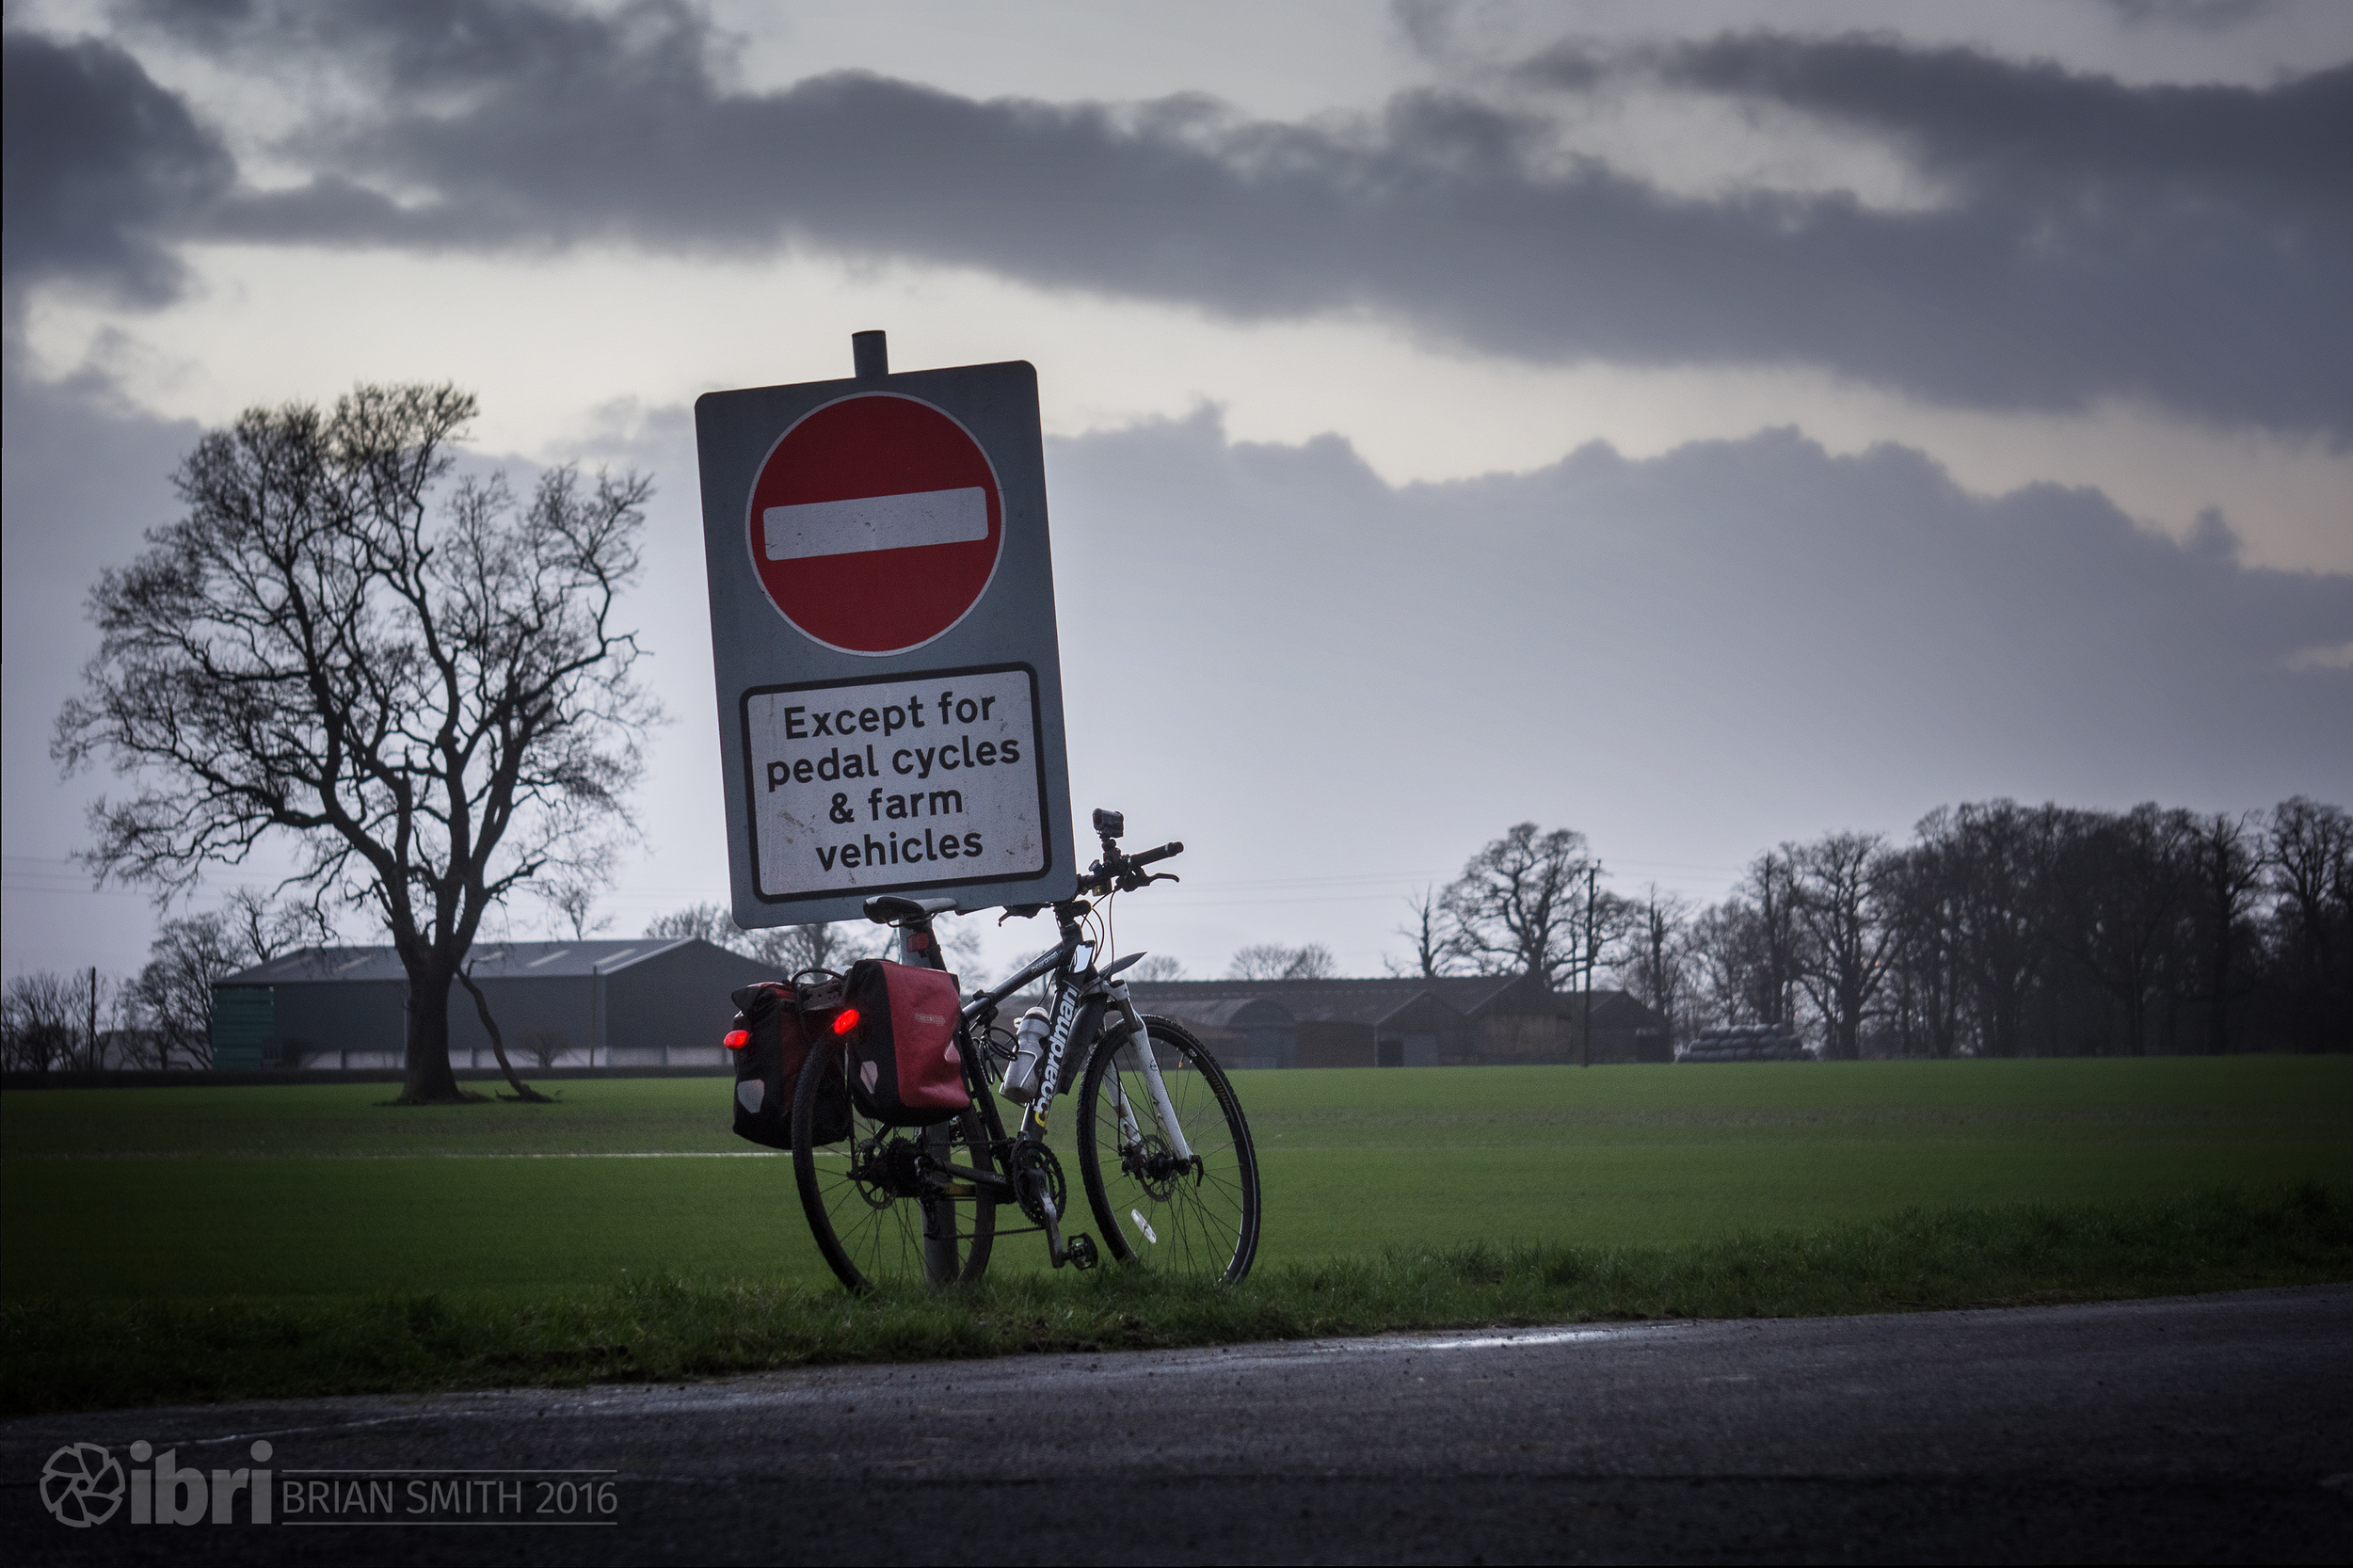 National Cycle Network - Route 76. Alloa to Cambus section.